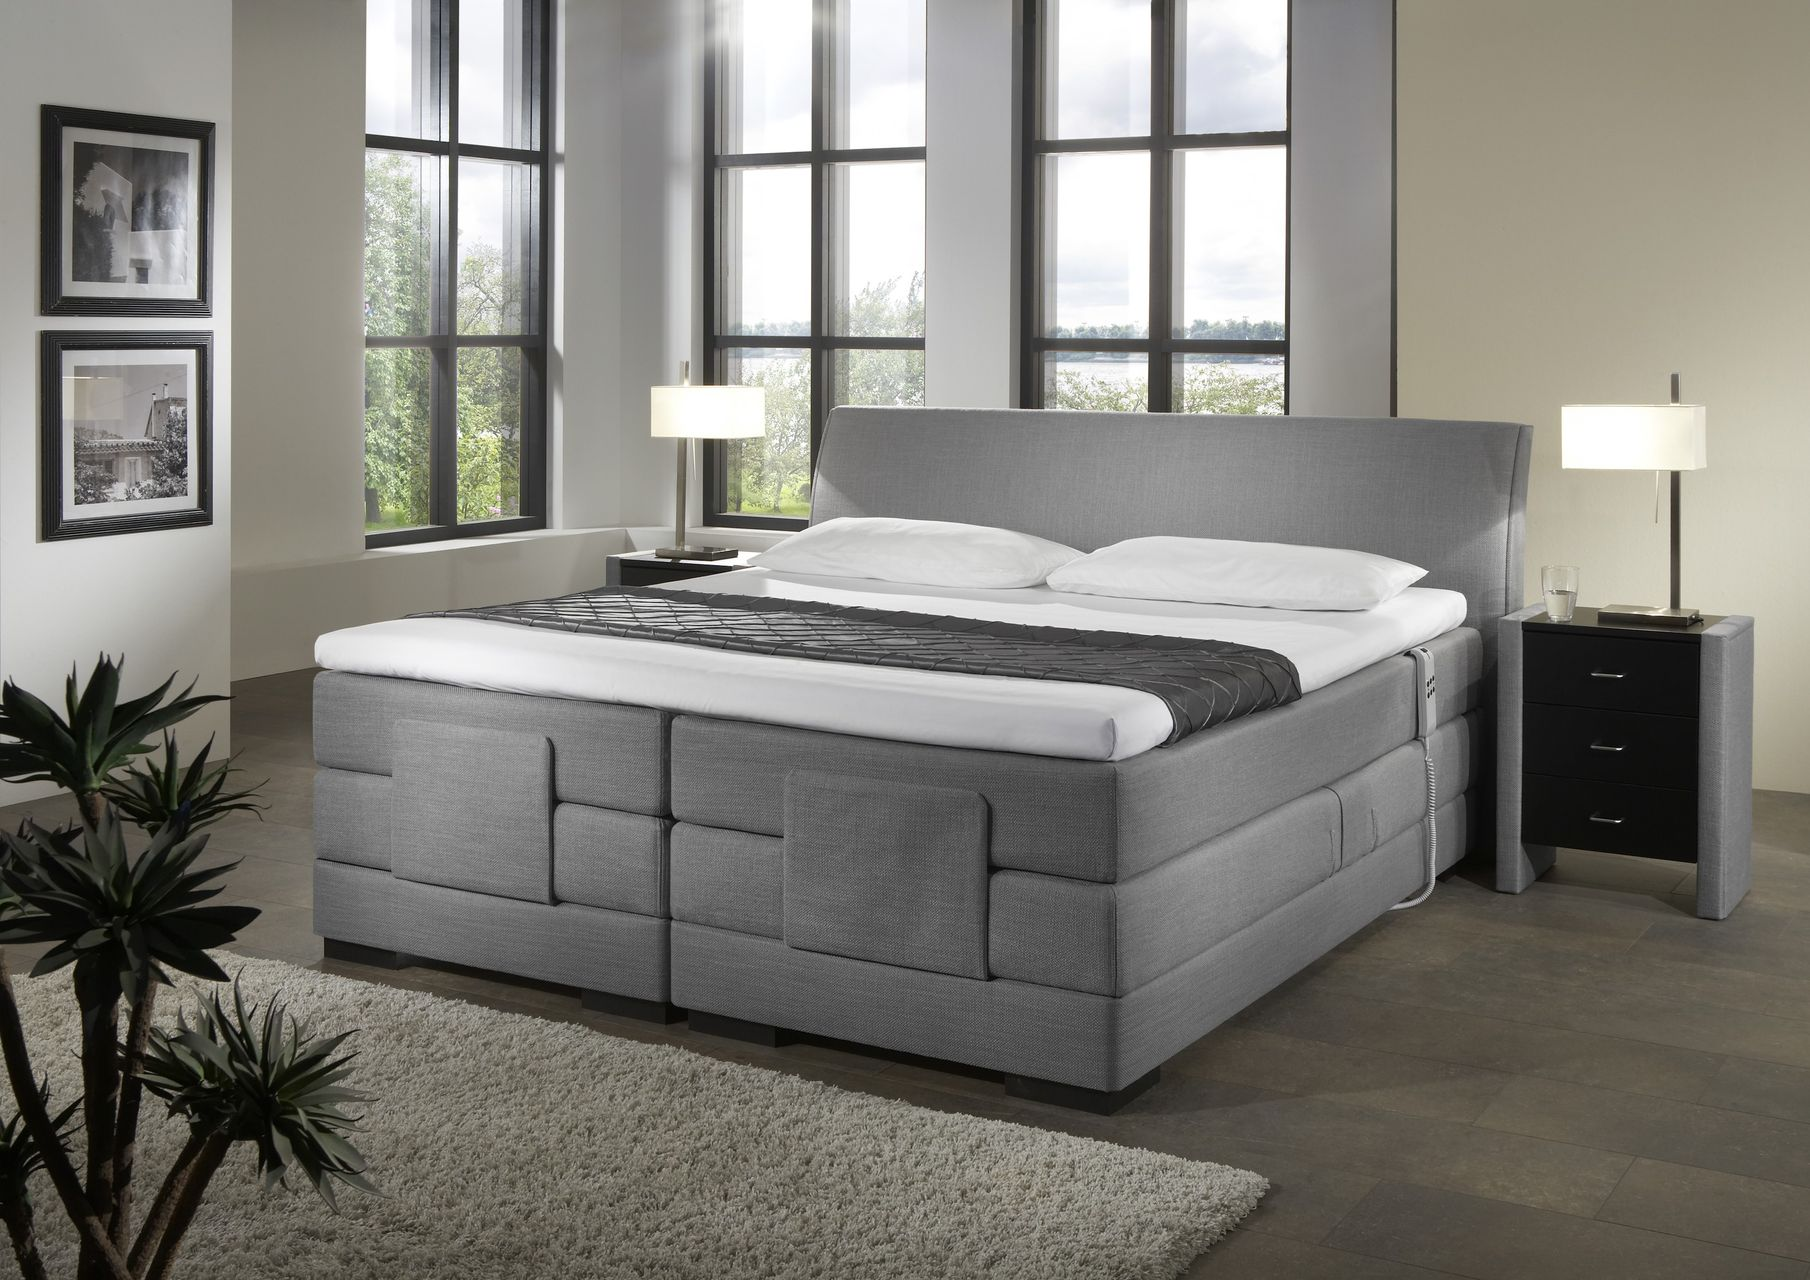 boxspringbett elektrisch verstellbar avignon. Black Bedroom Furniture Sets. Home Design Ideas